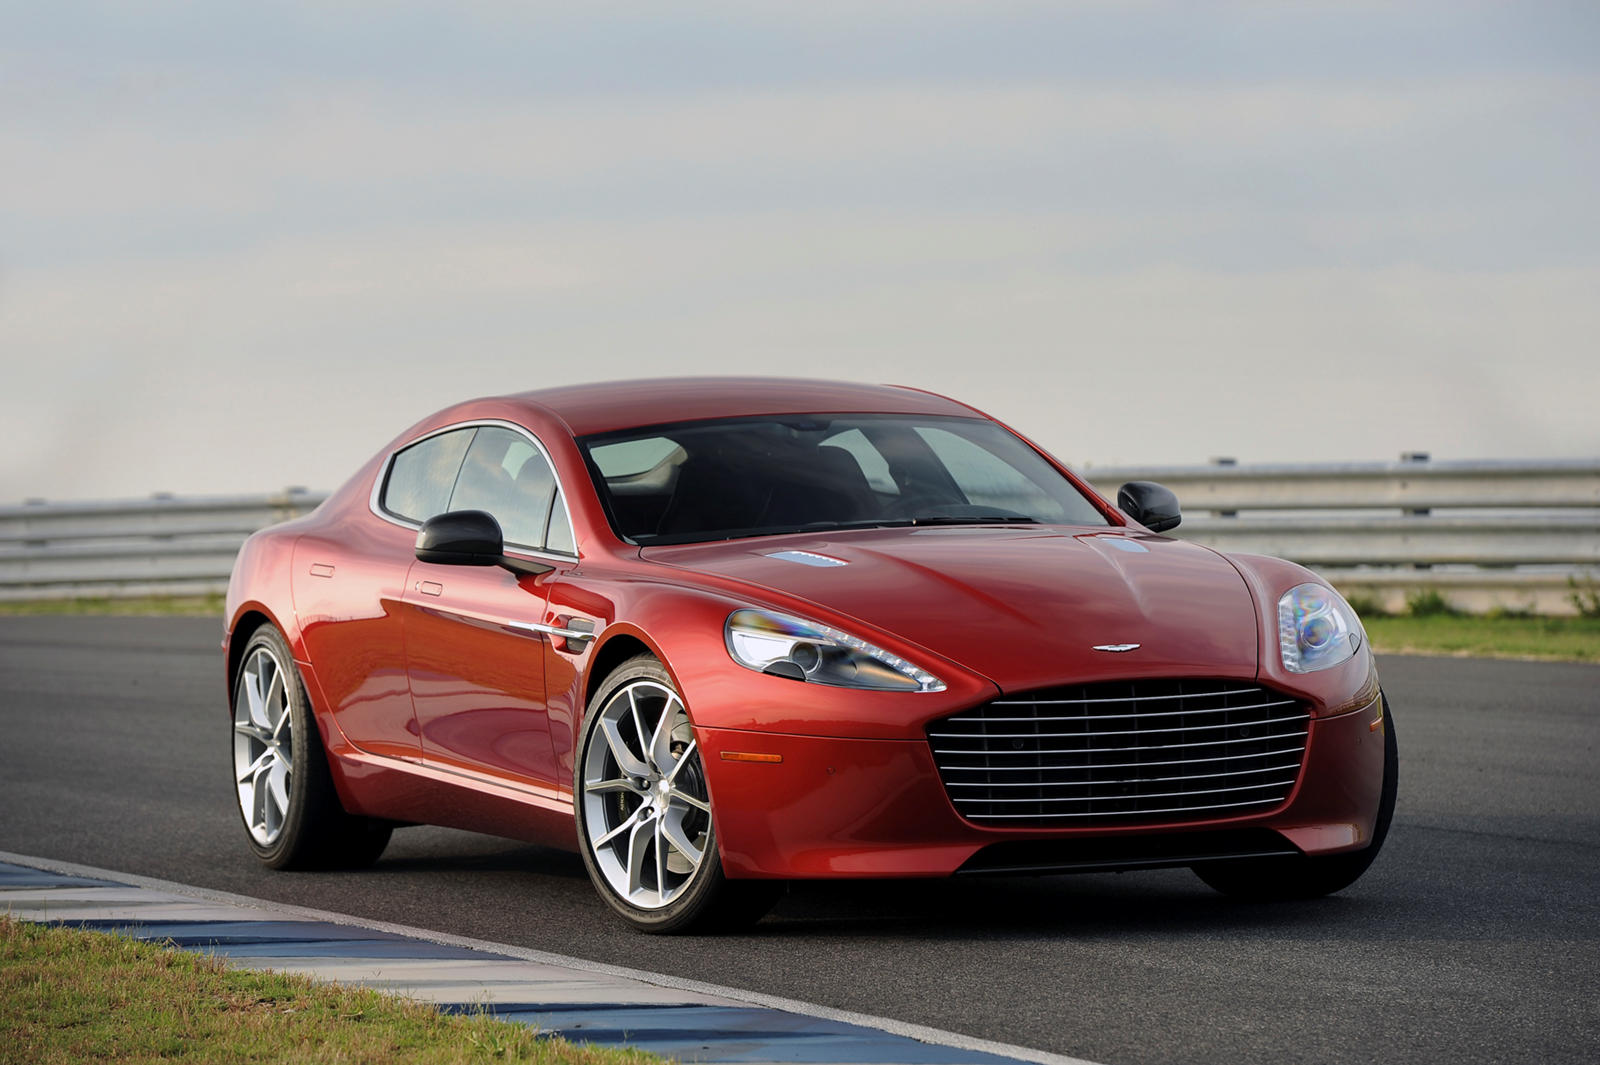 2017 Aston Martin Rapide S Review Trims Specs Price New Interior Features Exterior Design And Specifications Carbuzz